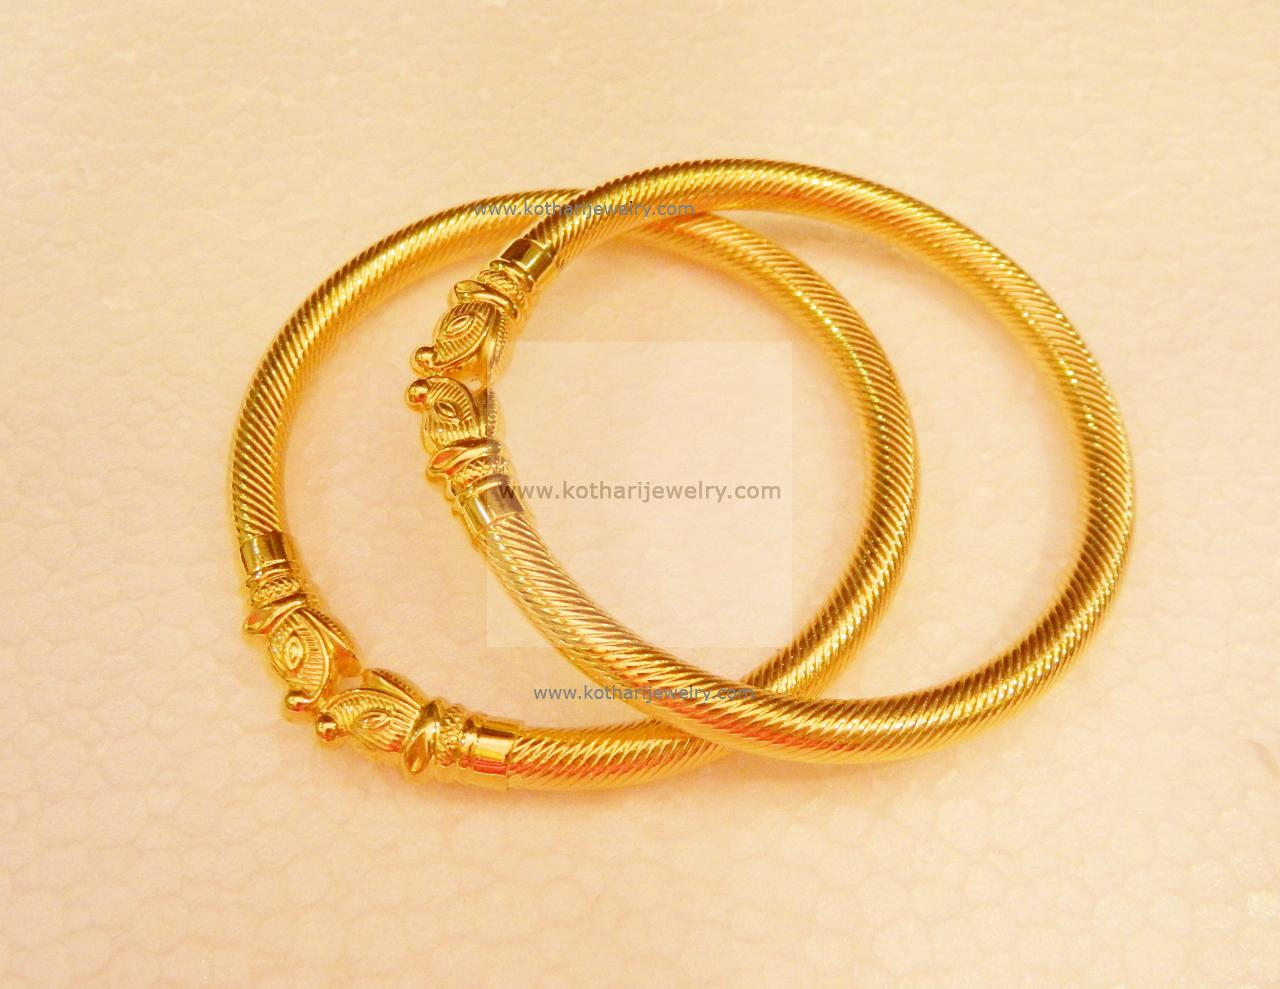 bracelet plain accessories pin bangles pinterest bangle gold thin